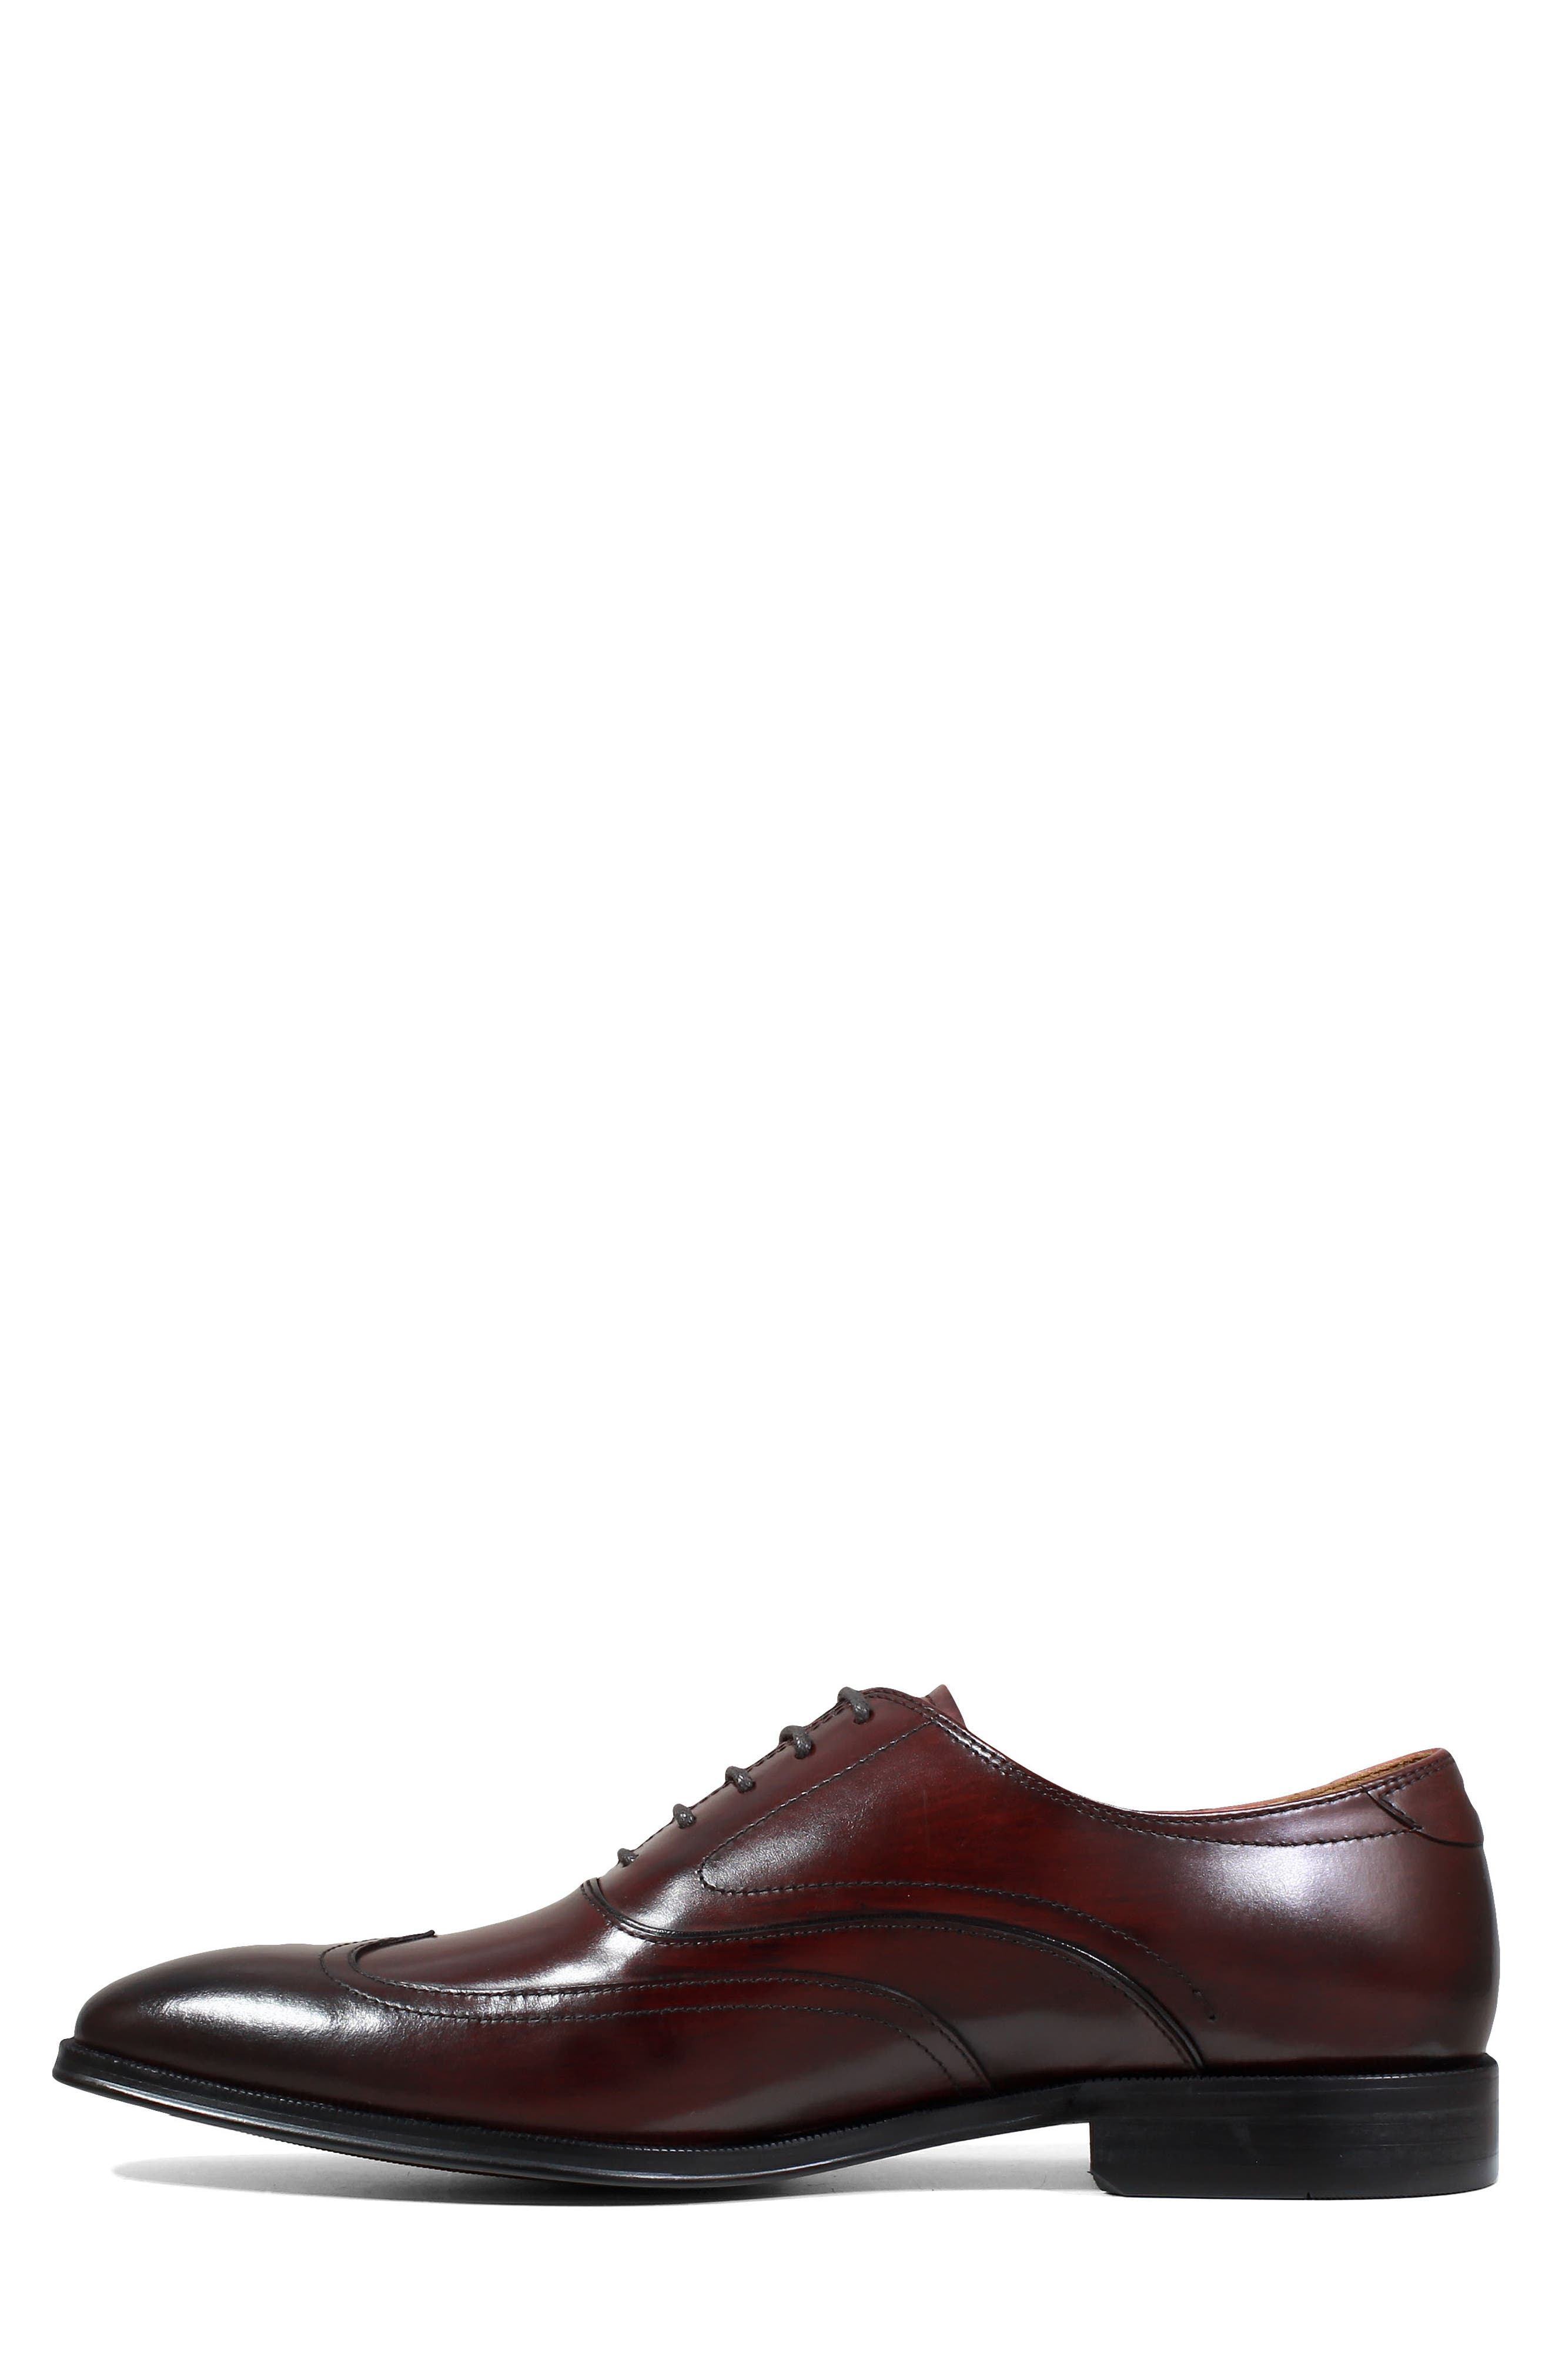 Belfast Wingtip,                             Alternate thumbnail 7, color,                             BURGUNDY LEATHER